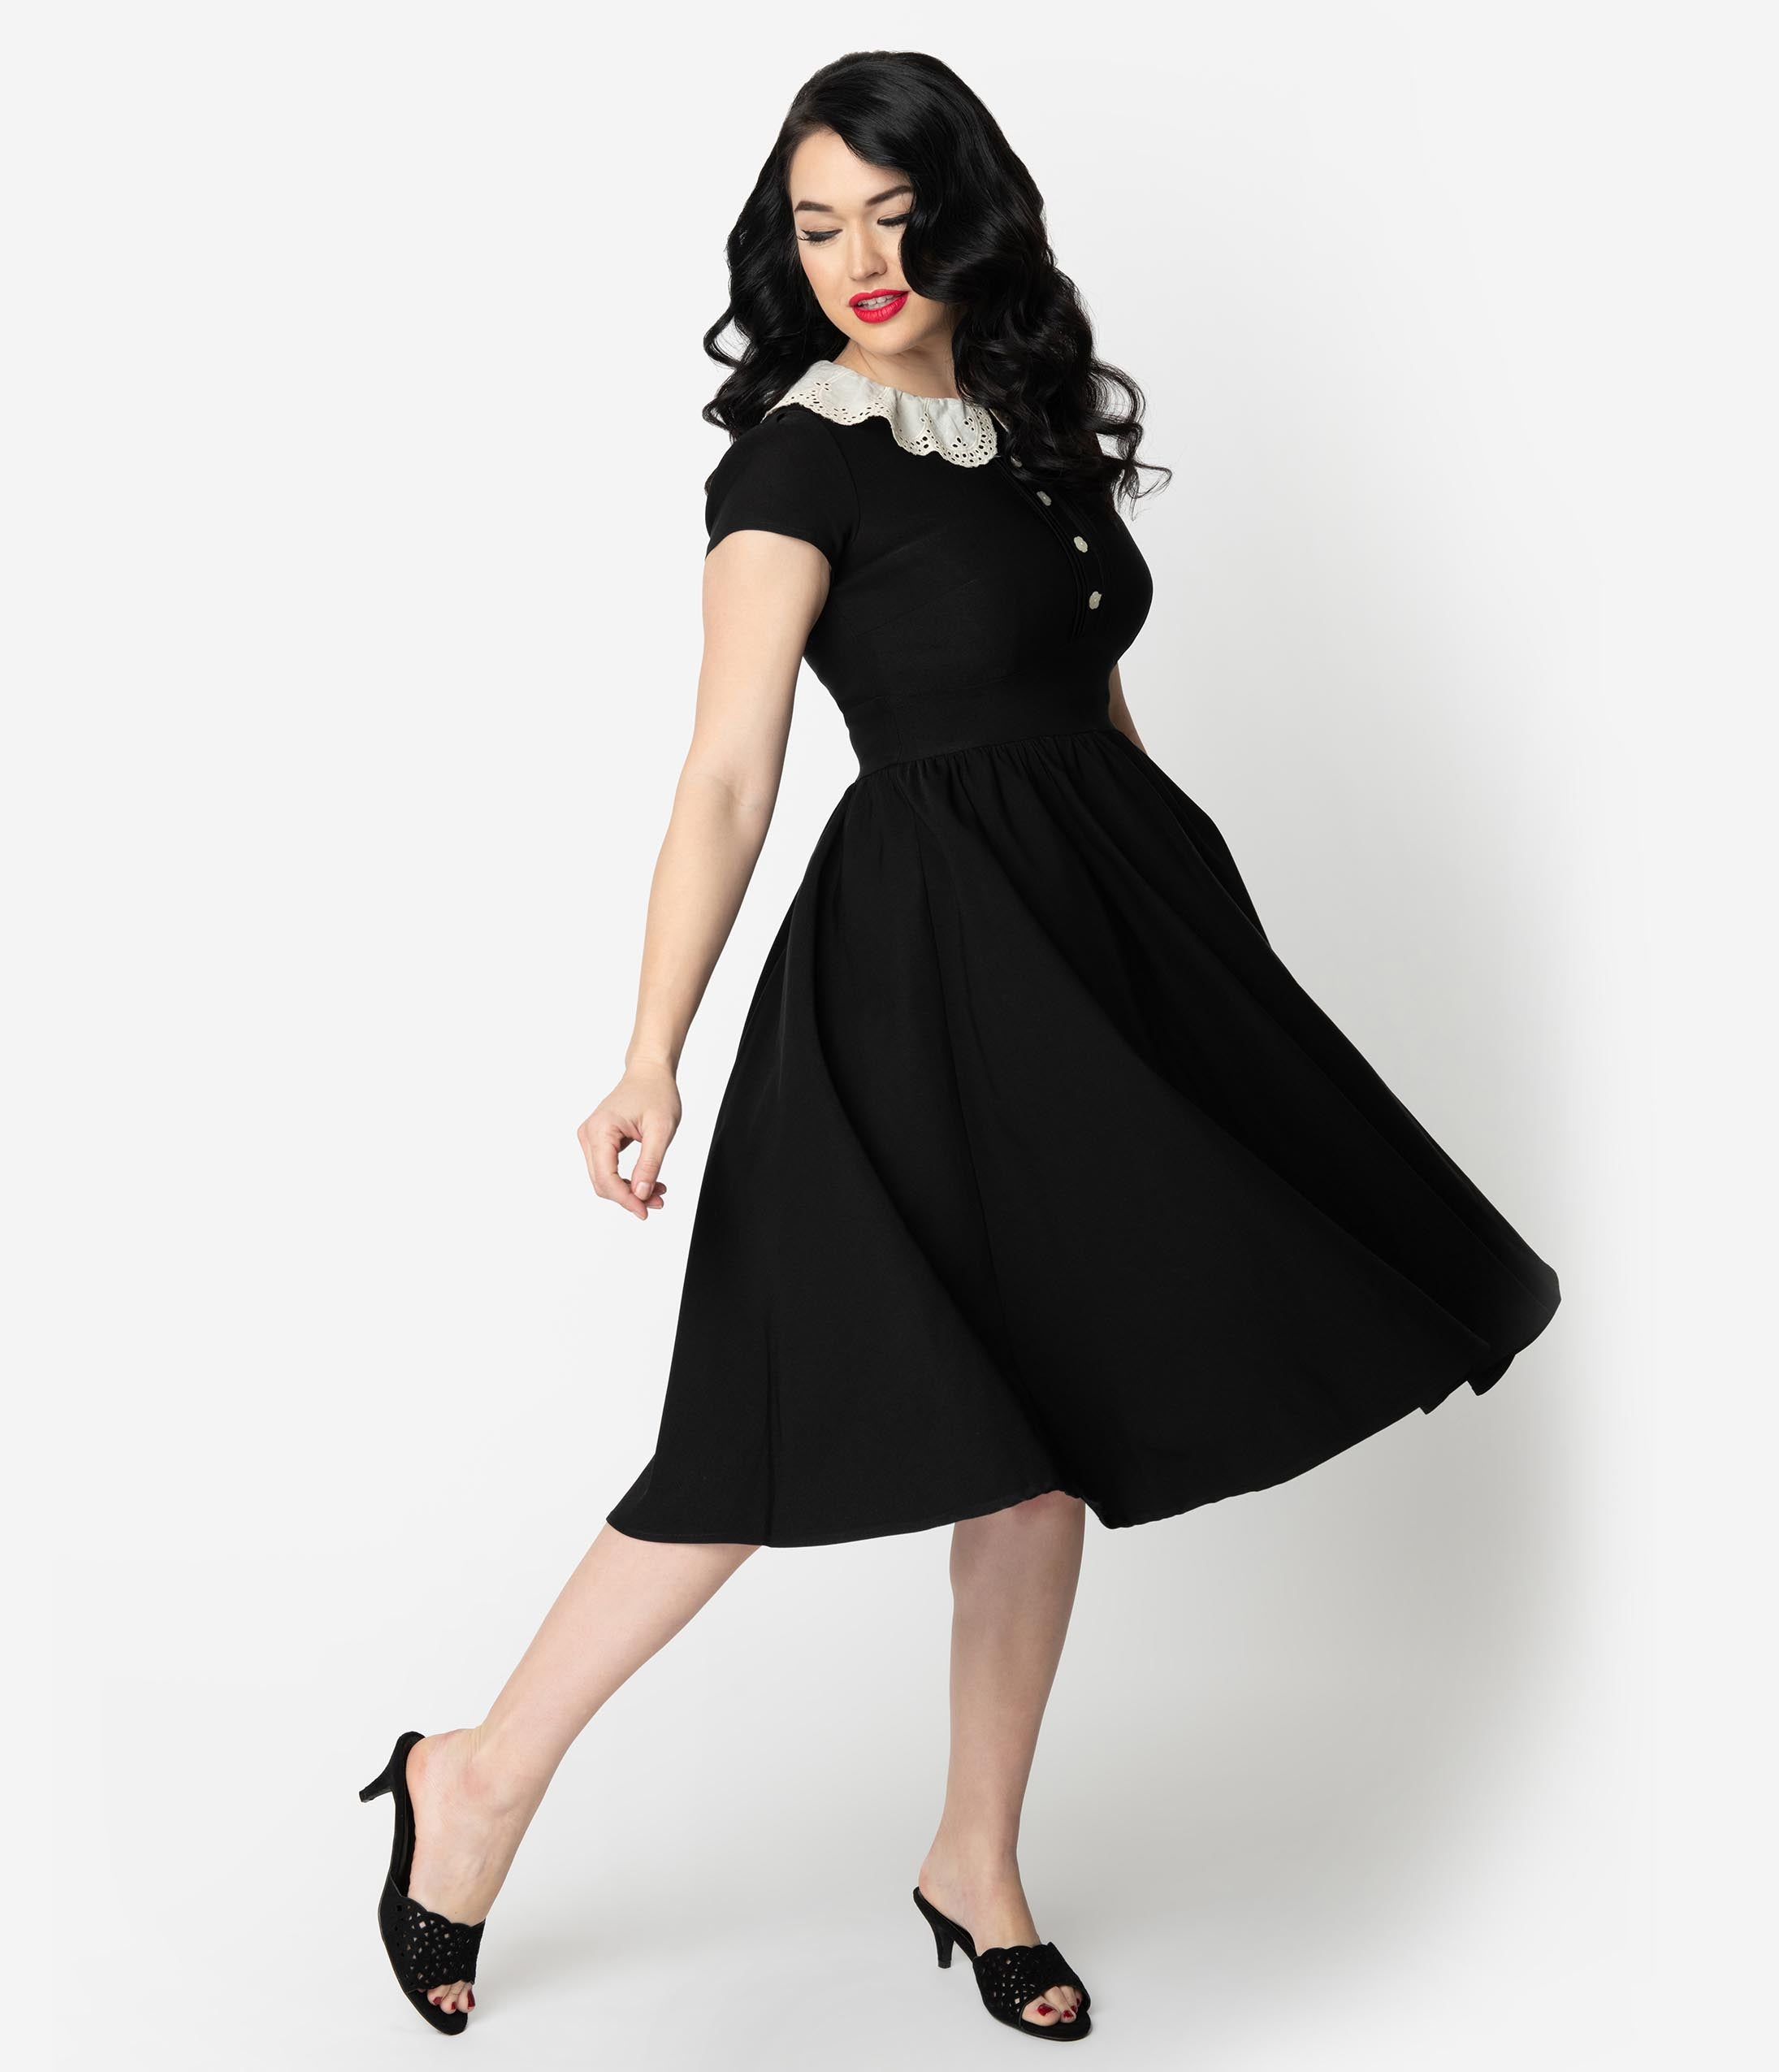 1950s Swing Dresses | 50s Swing Dress Stop Staring Black With Lace Collar Gladil Swing Dress $141.00 AT vintagedancer.com